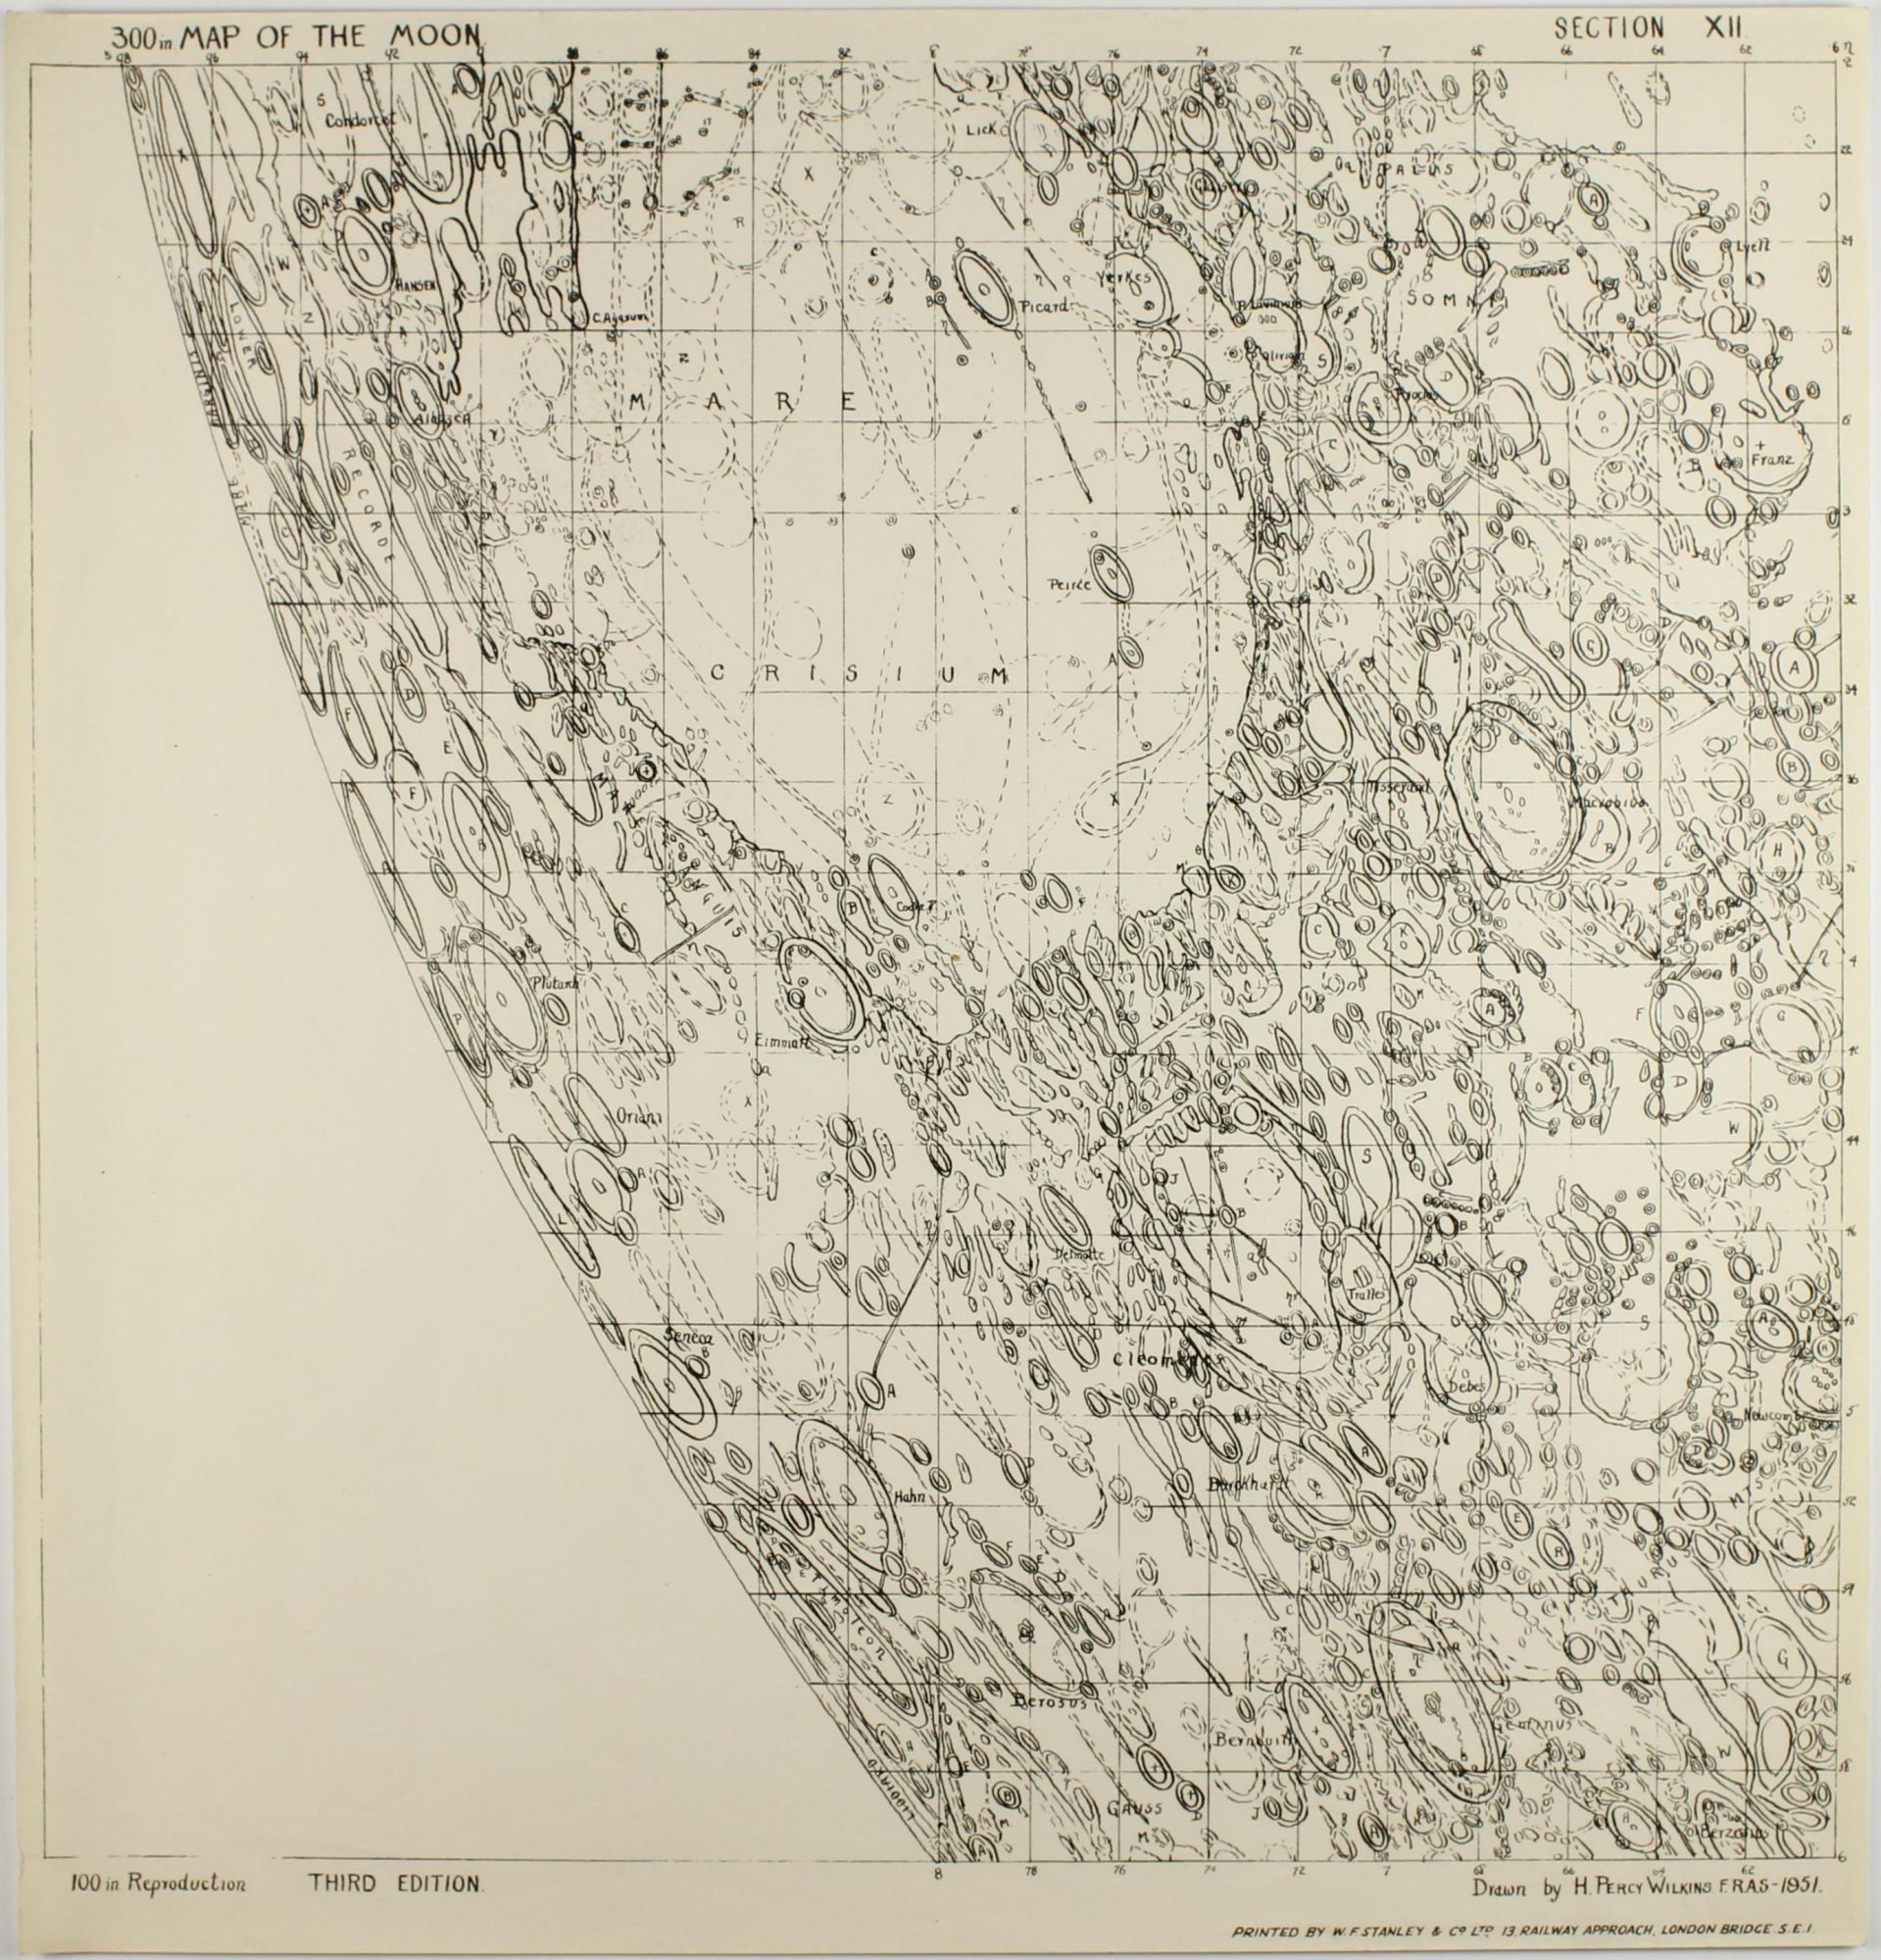 300-inch Map of the Moon by Hugh Percy WILKINS on Milestones of Science  Books